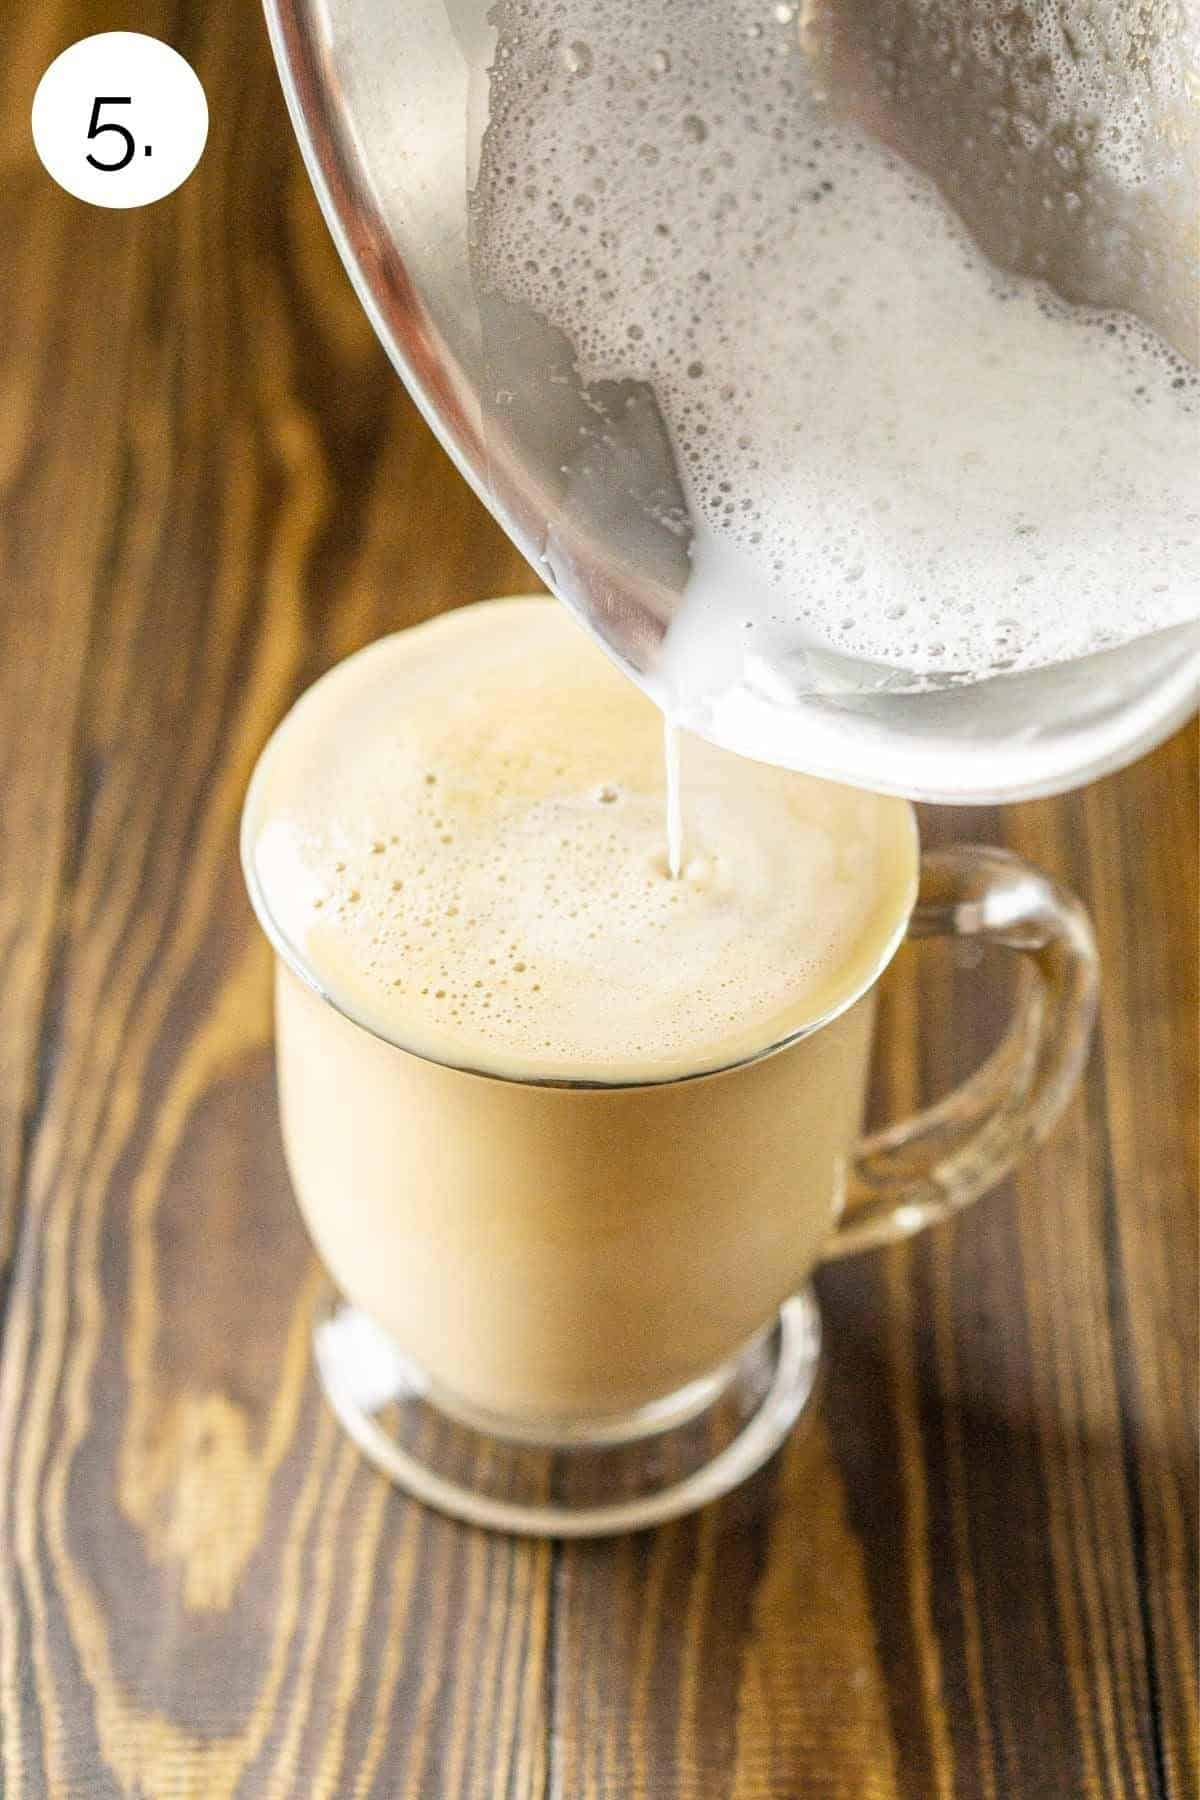 Pouring the frothed milk into a mug with the espresso and maple syrup.